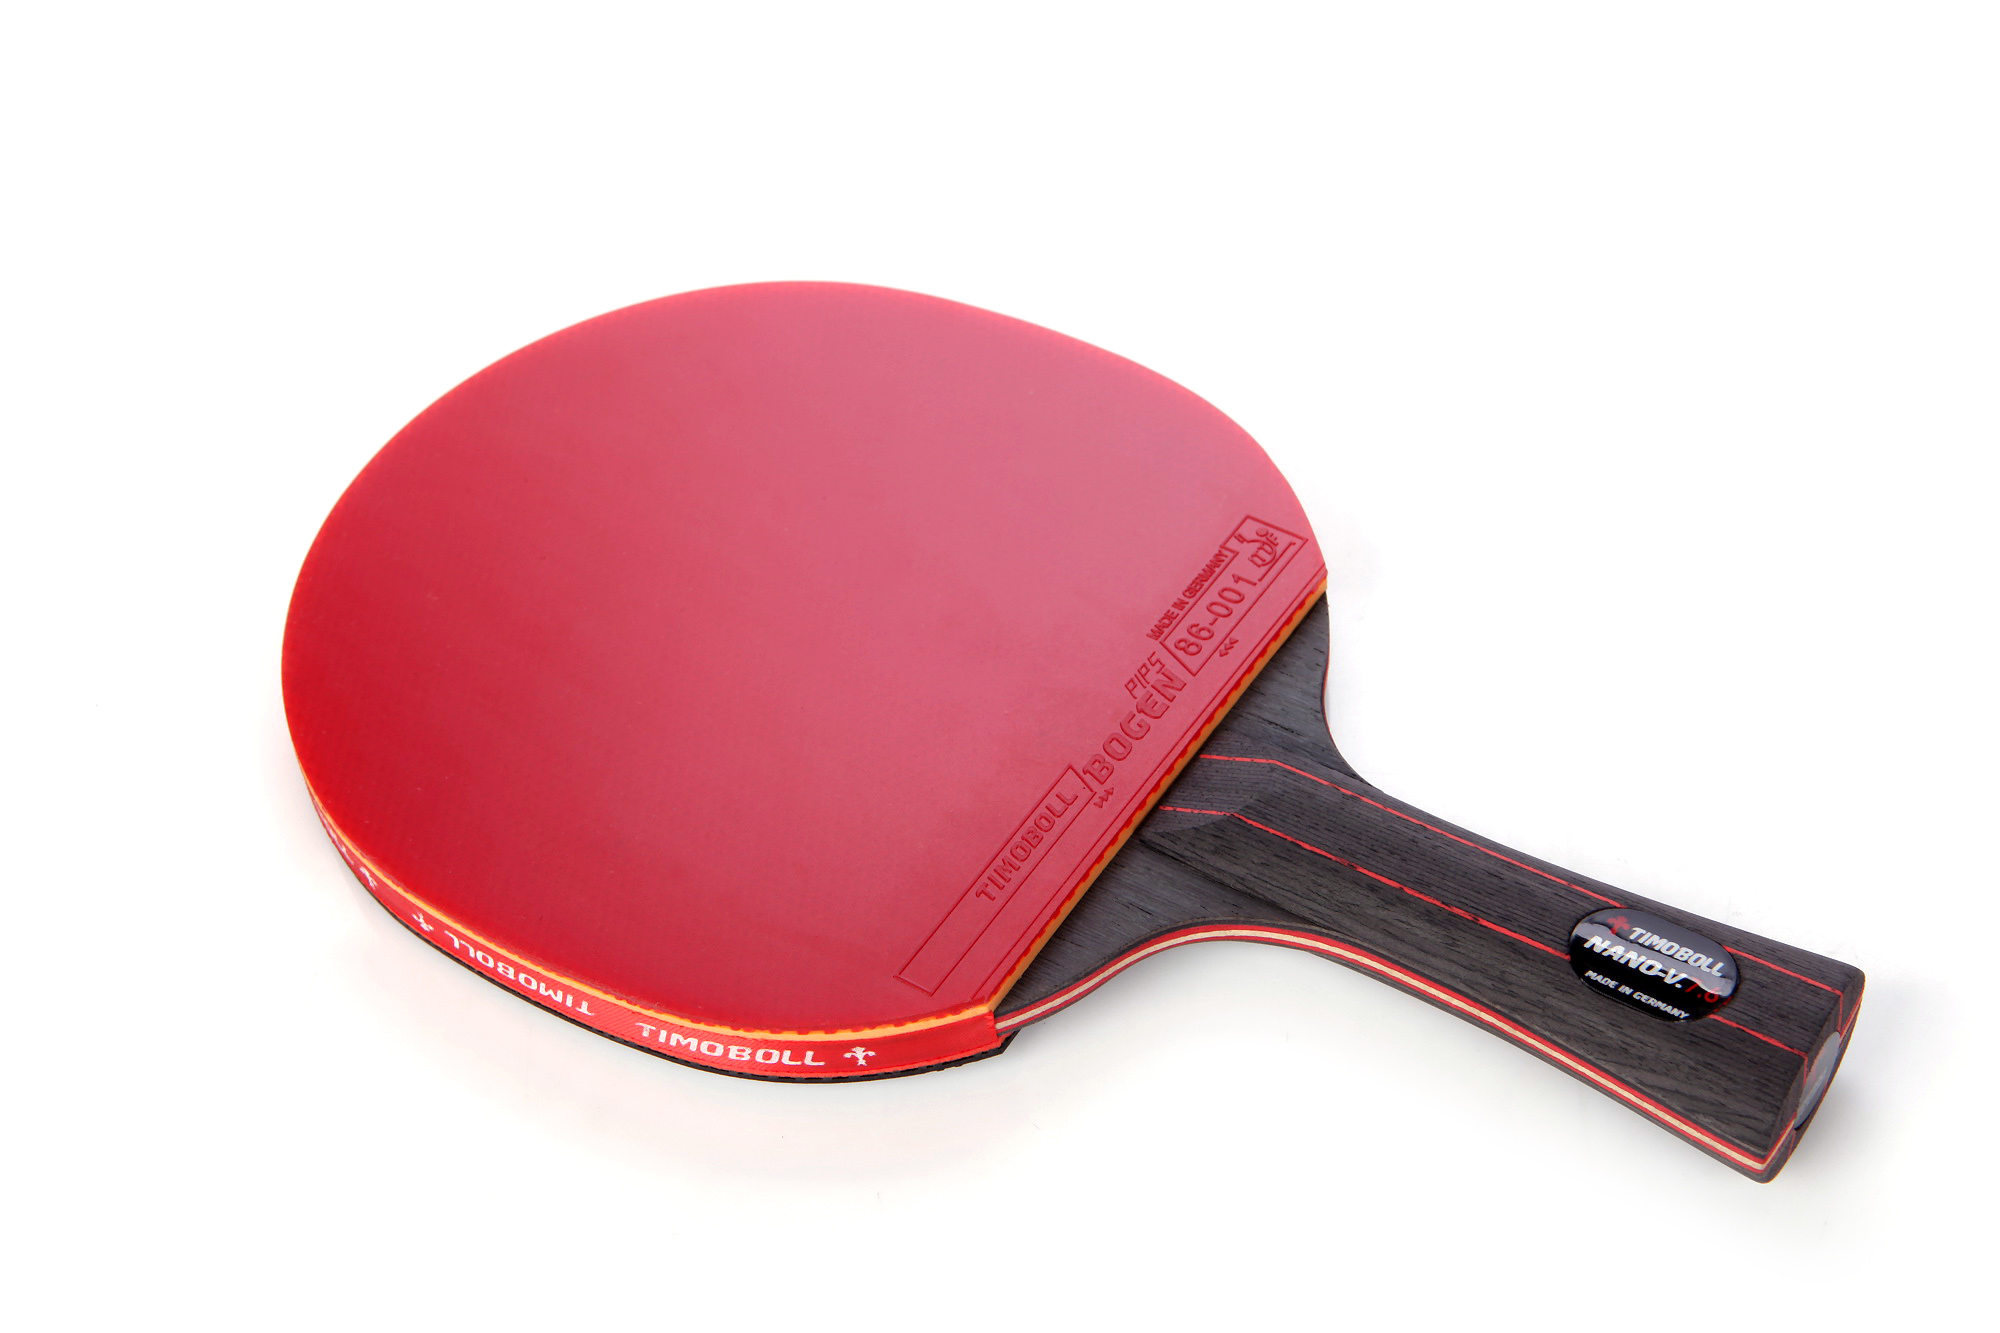 Timo boll racket reviews online shopping reviews on timo - Raquette de tennis de table butterfly ...